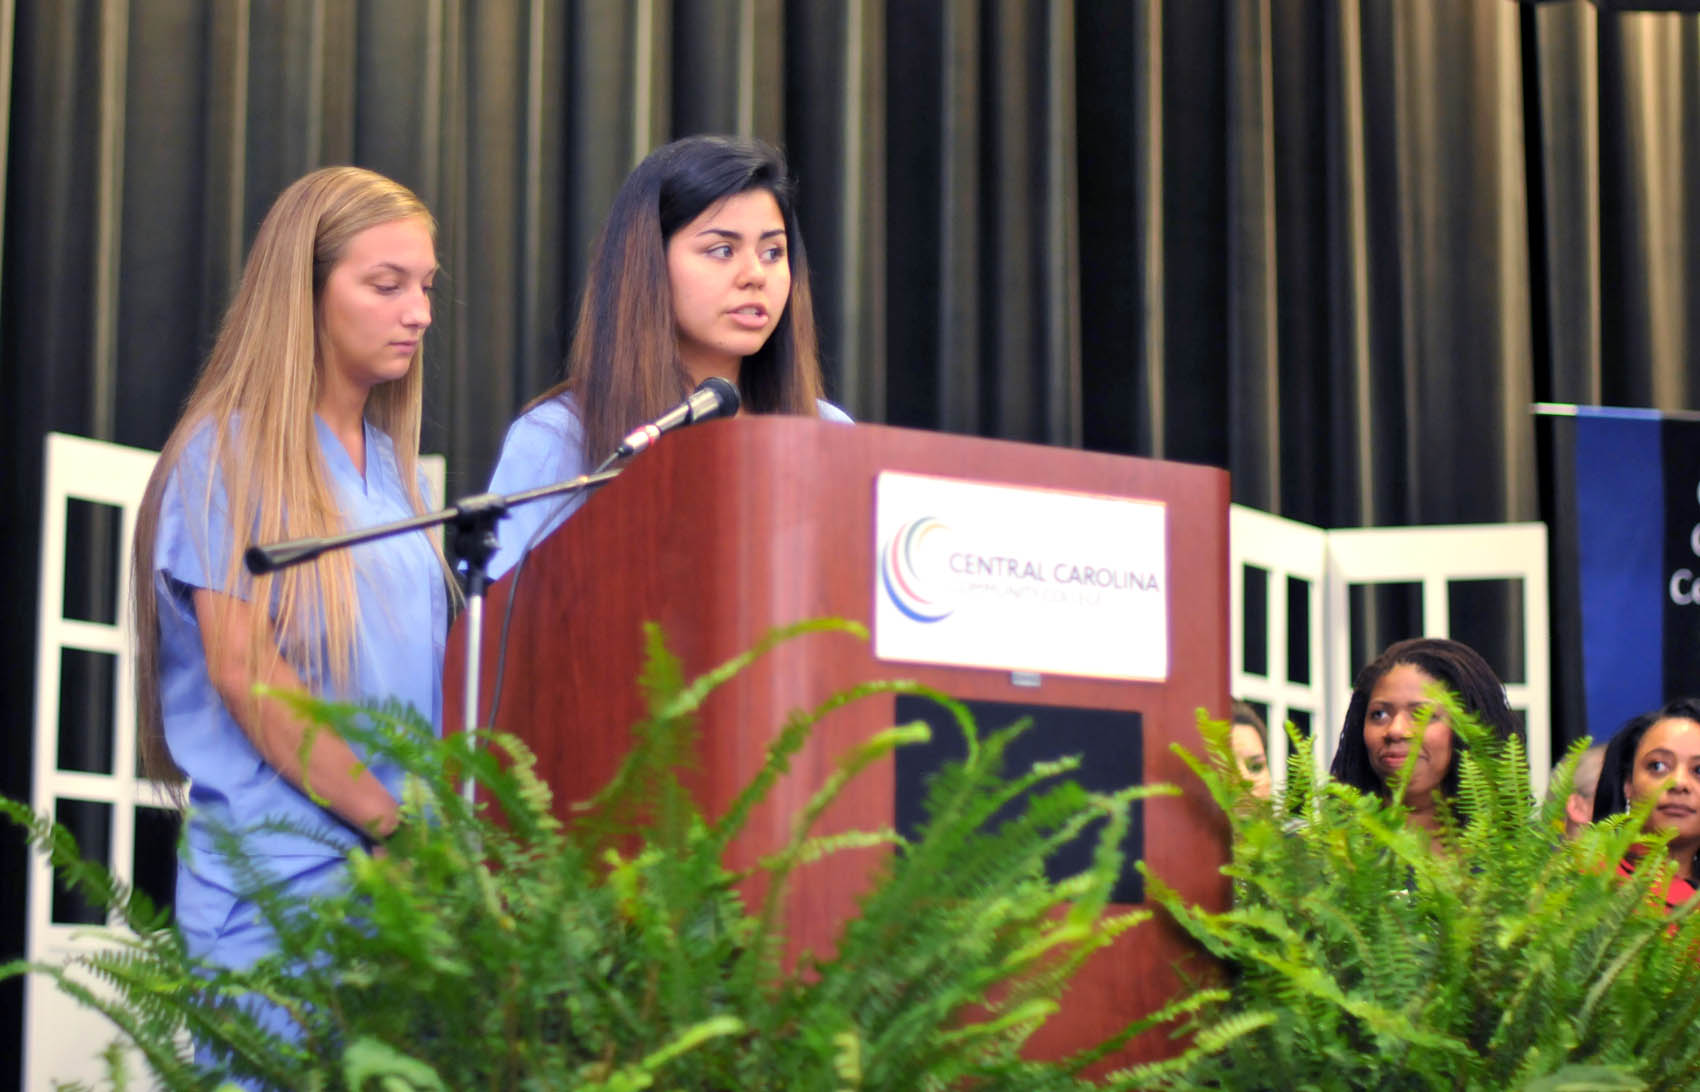 Click to enlarge,  Brooke Madison and Zuheryi Lievano, of Harnett County, were among the student speakers at the Central Carolina Community College Continuing Education medical programs graduation. The event was held May 26 at the Dennis A. Wicker Civic Center in Sanford. For more information about Continuing Education medical programs, call Lennie Stephenson, CCCC's Director of Continuing Education medical programs, at 910-814-8833 or email lstephenson@cccc.edu.